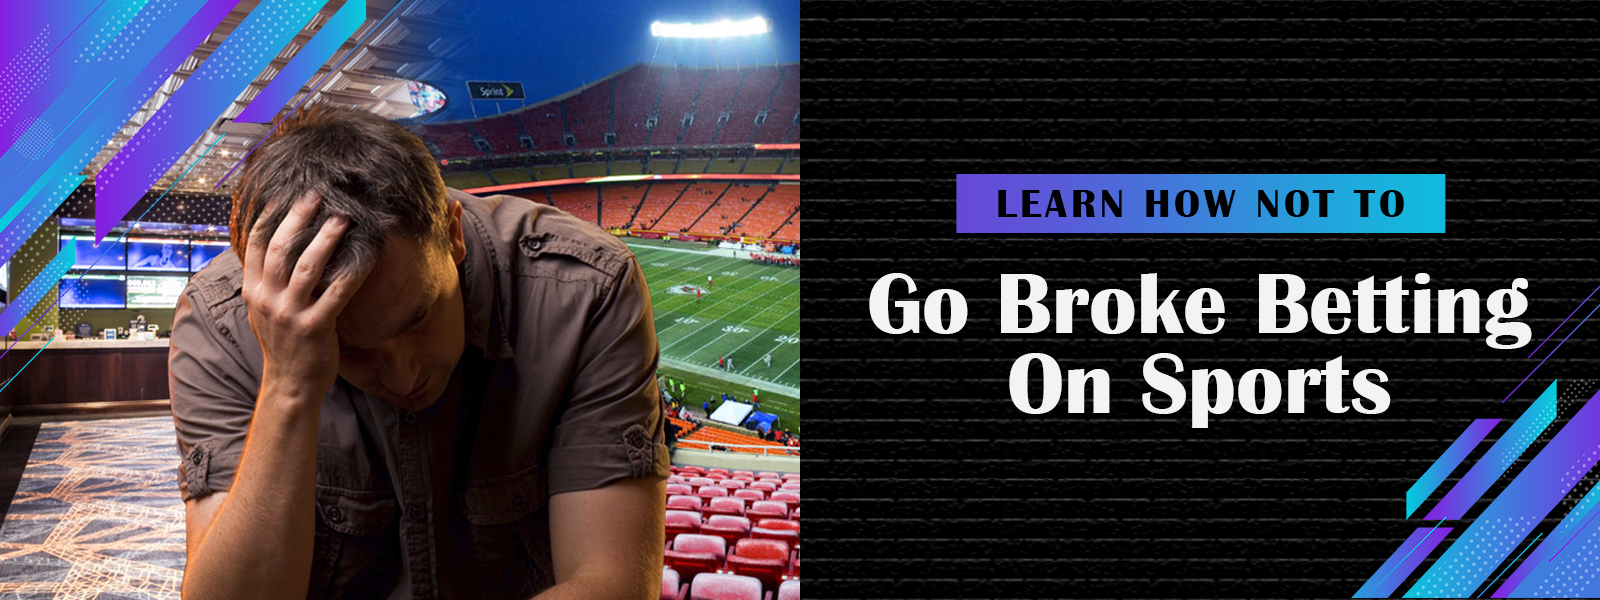 Learn How Not To Go Broke Betting On Sports